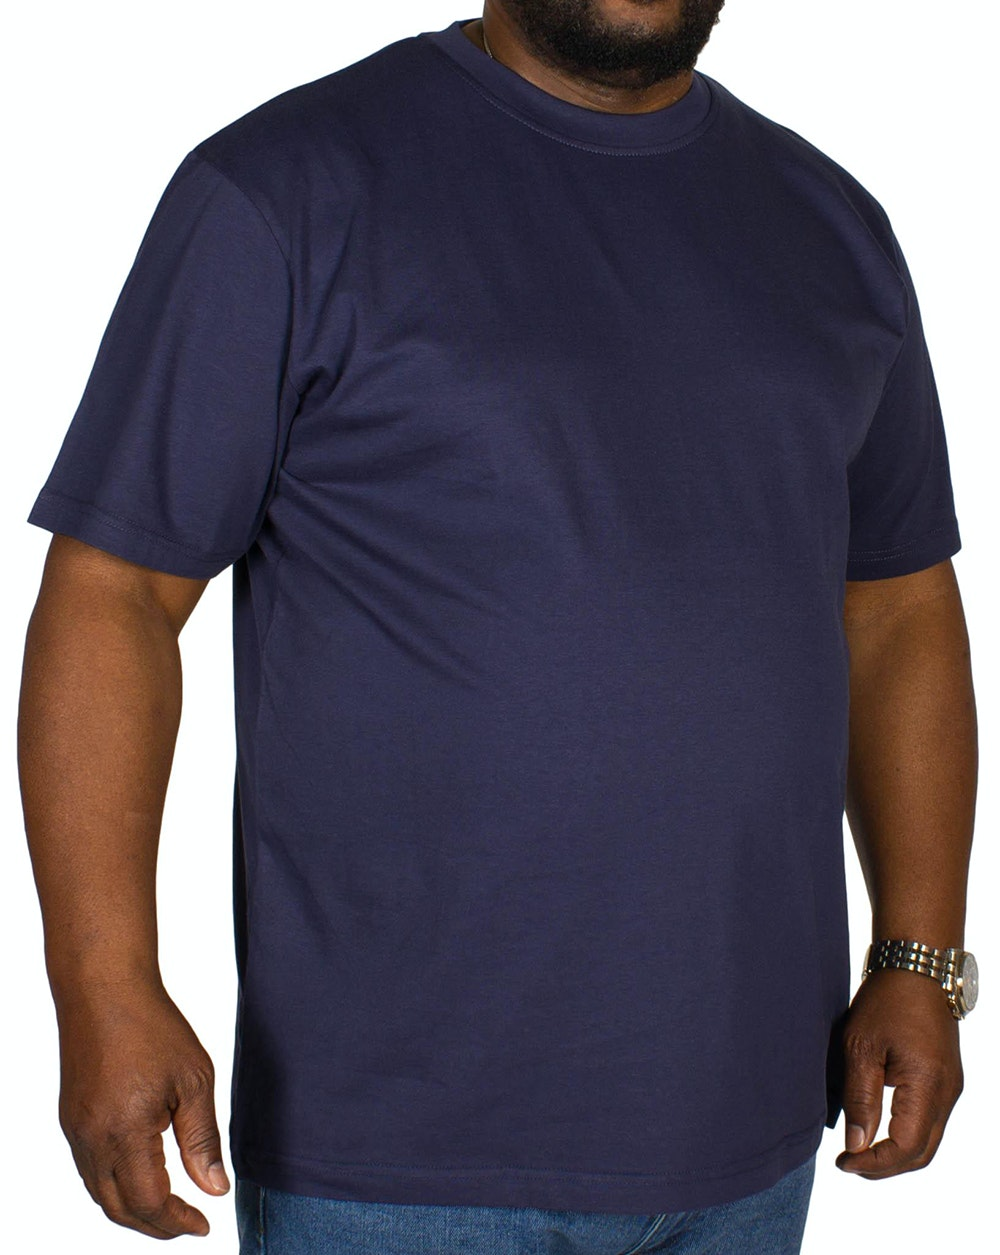 Bigdude Plain Crew Neck T-Shirt Navy Tall